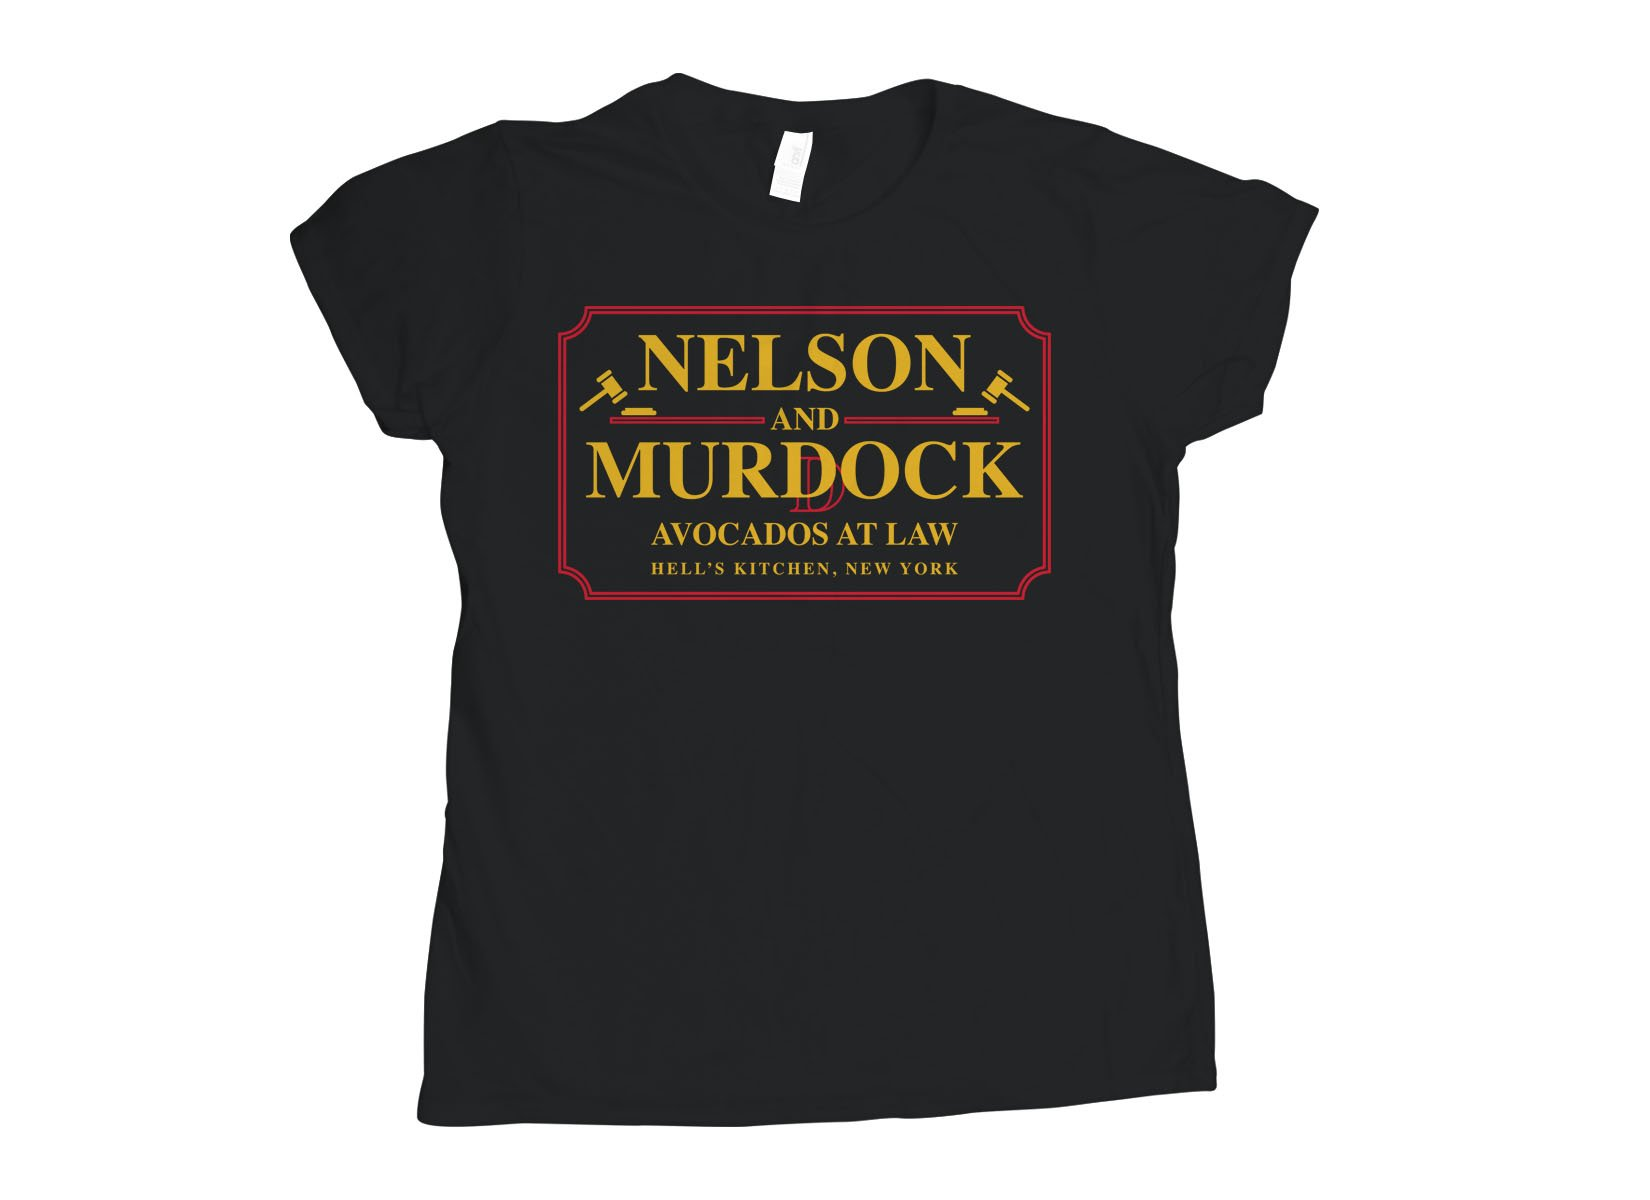 Nelson And Murdock on Womens T-Shirt